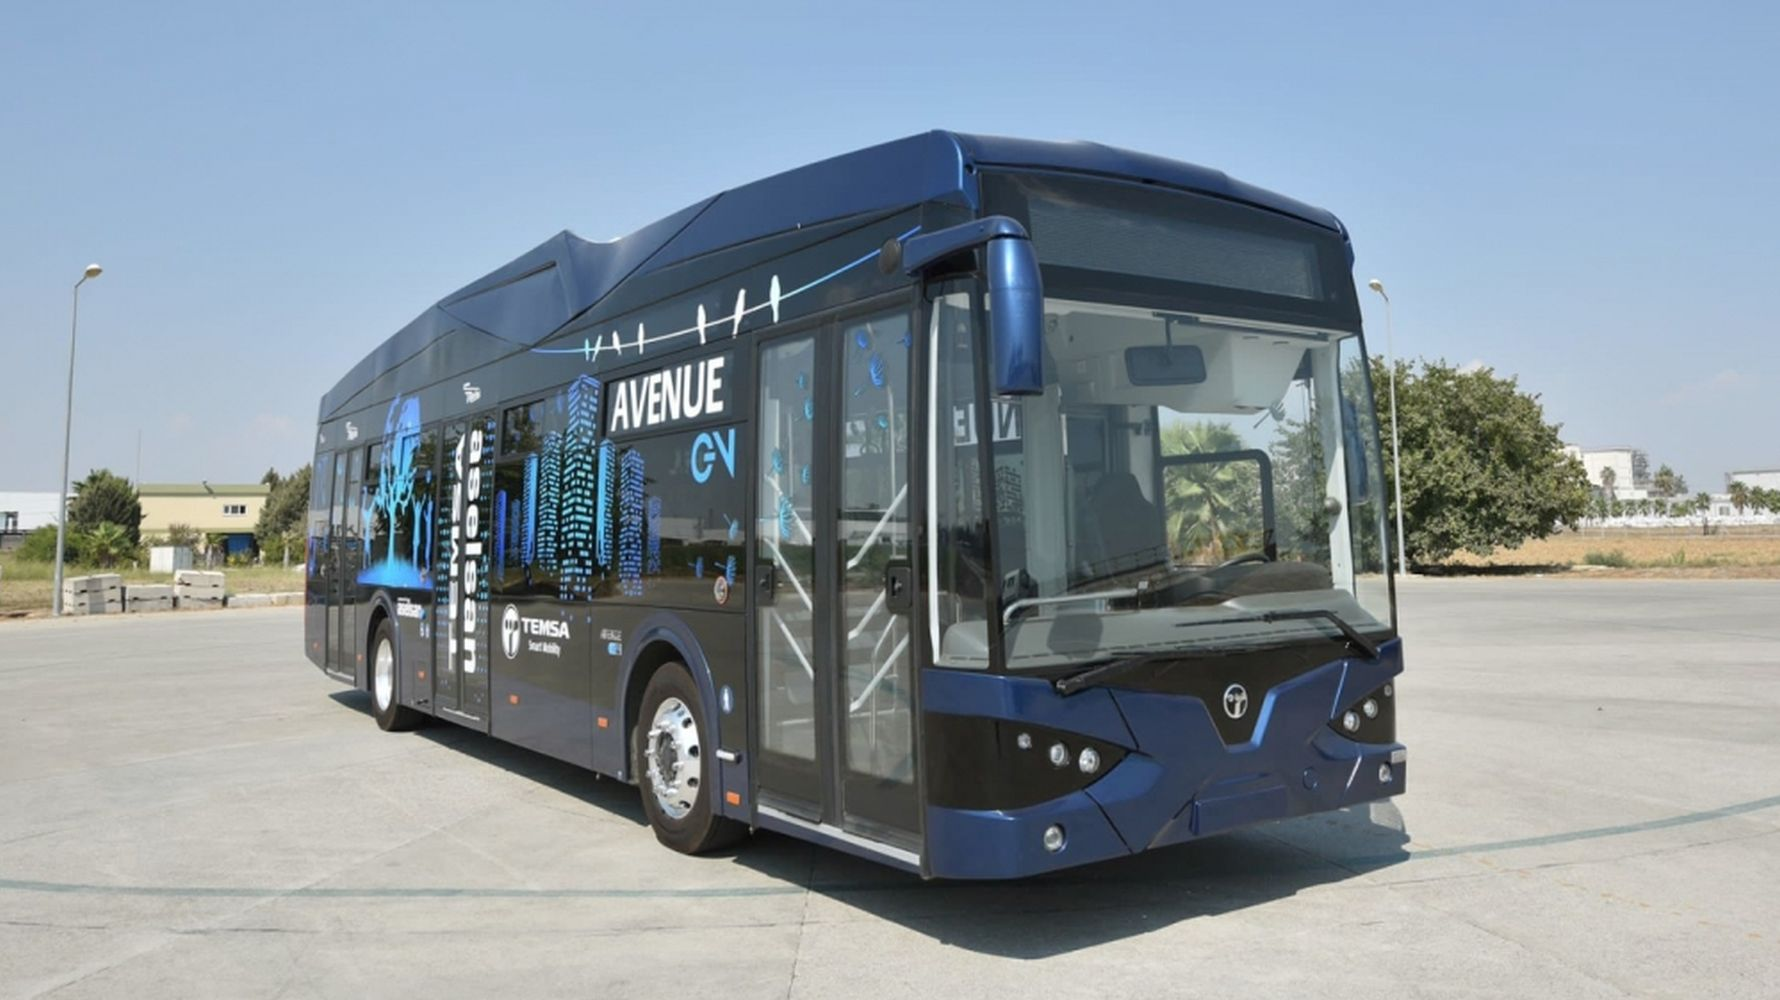 The first lithium battery-powered electric bus will come to life in Samsun turkiyede